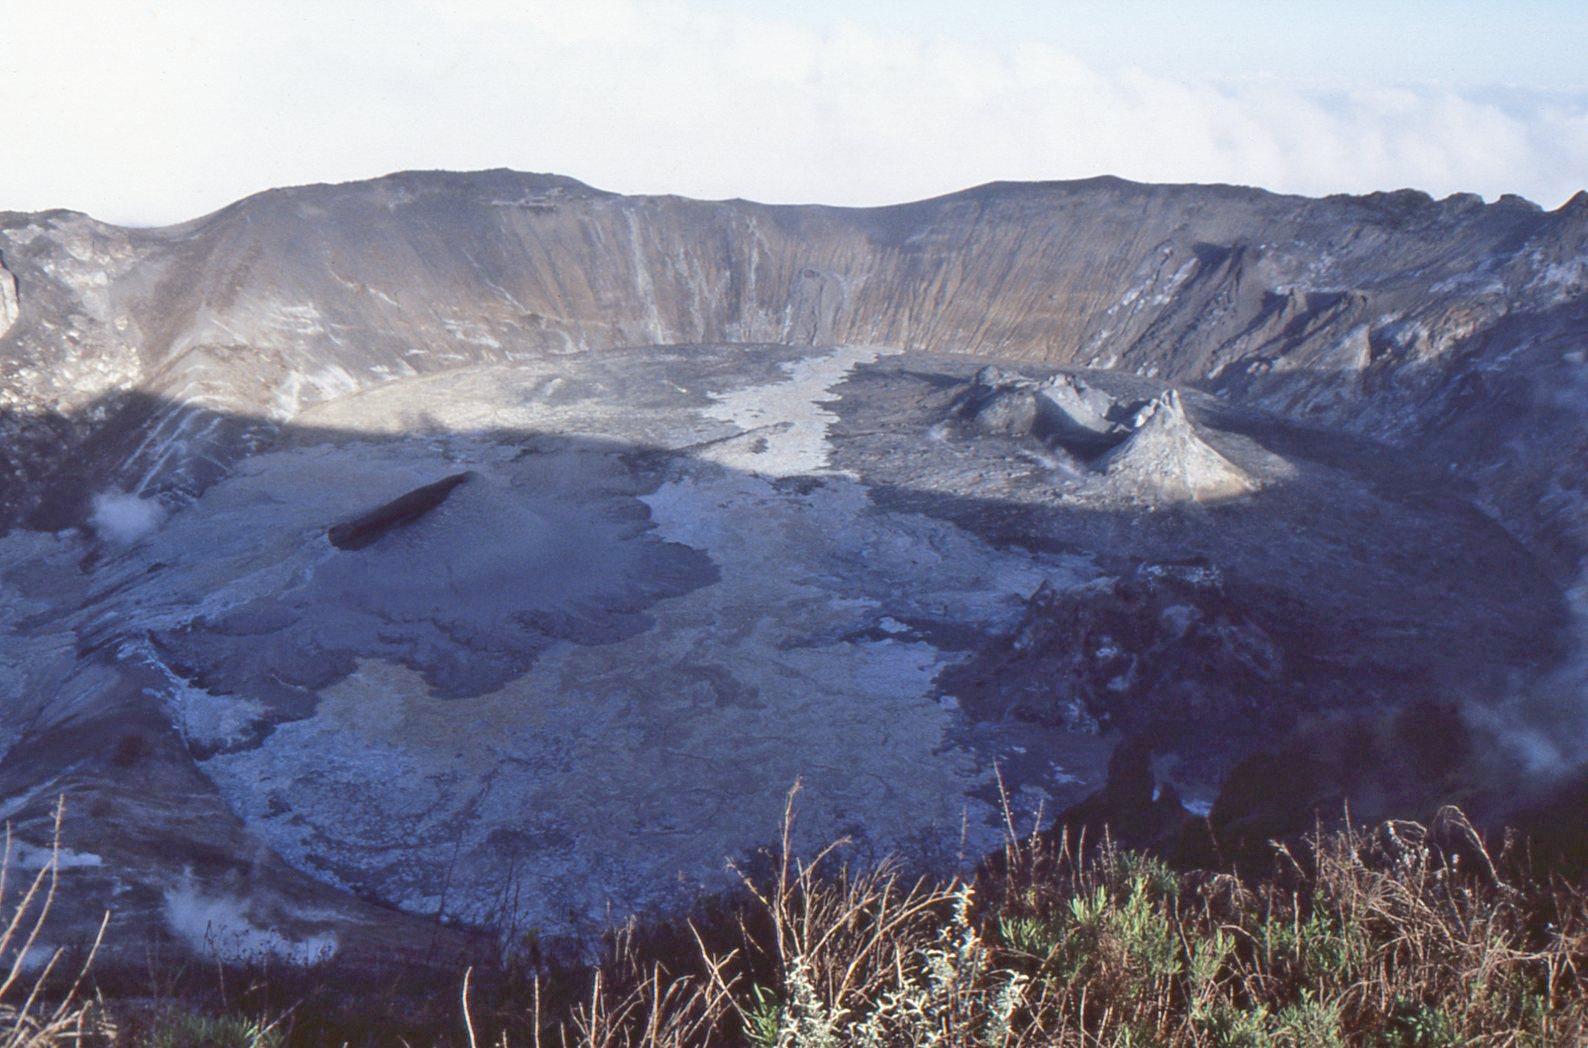 Early morning shadow across the active crater of Oldoinyo Lengai, November 1988.